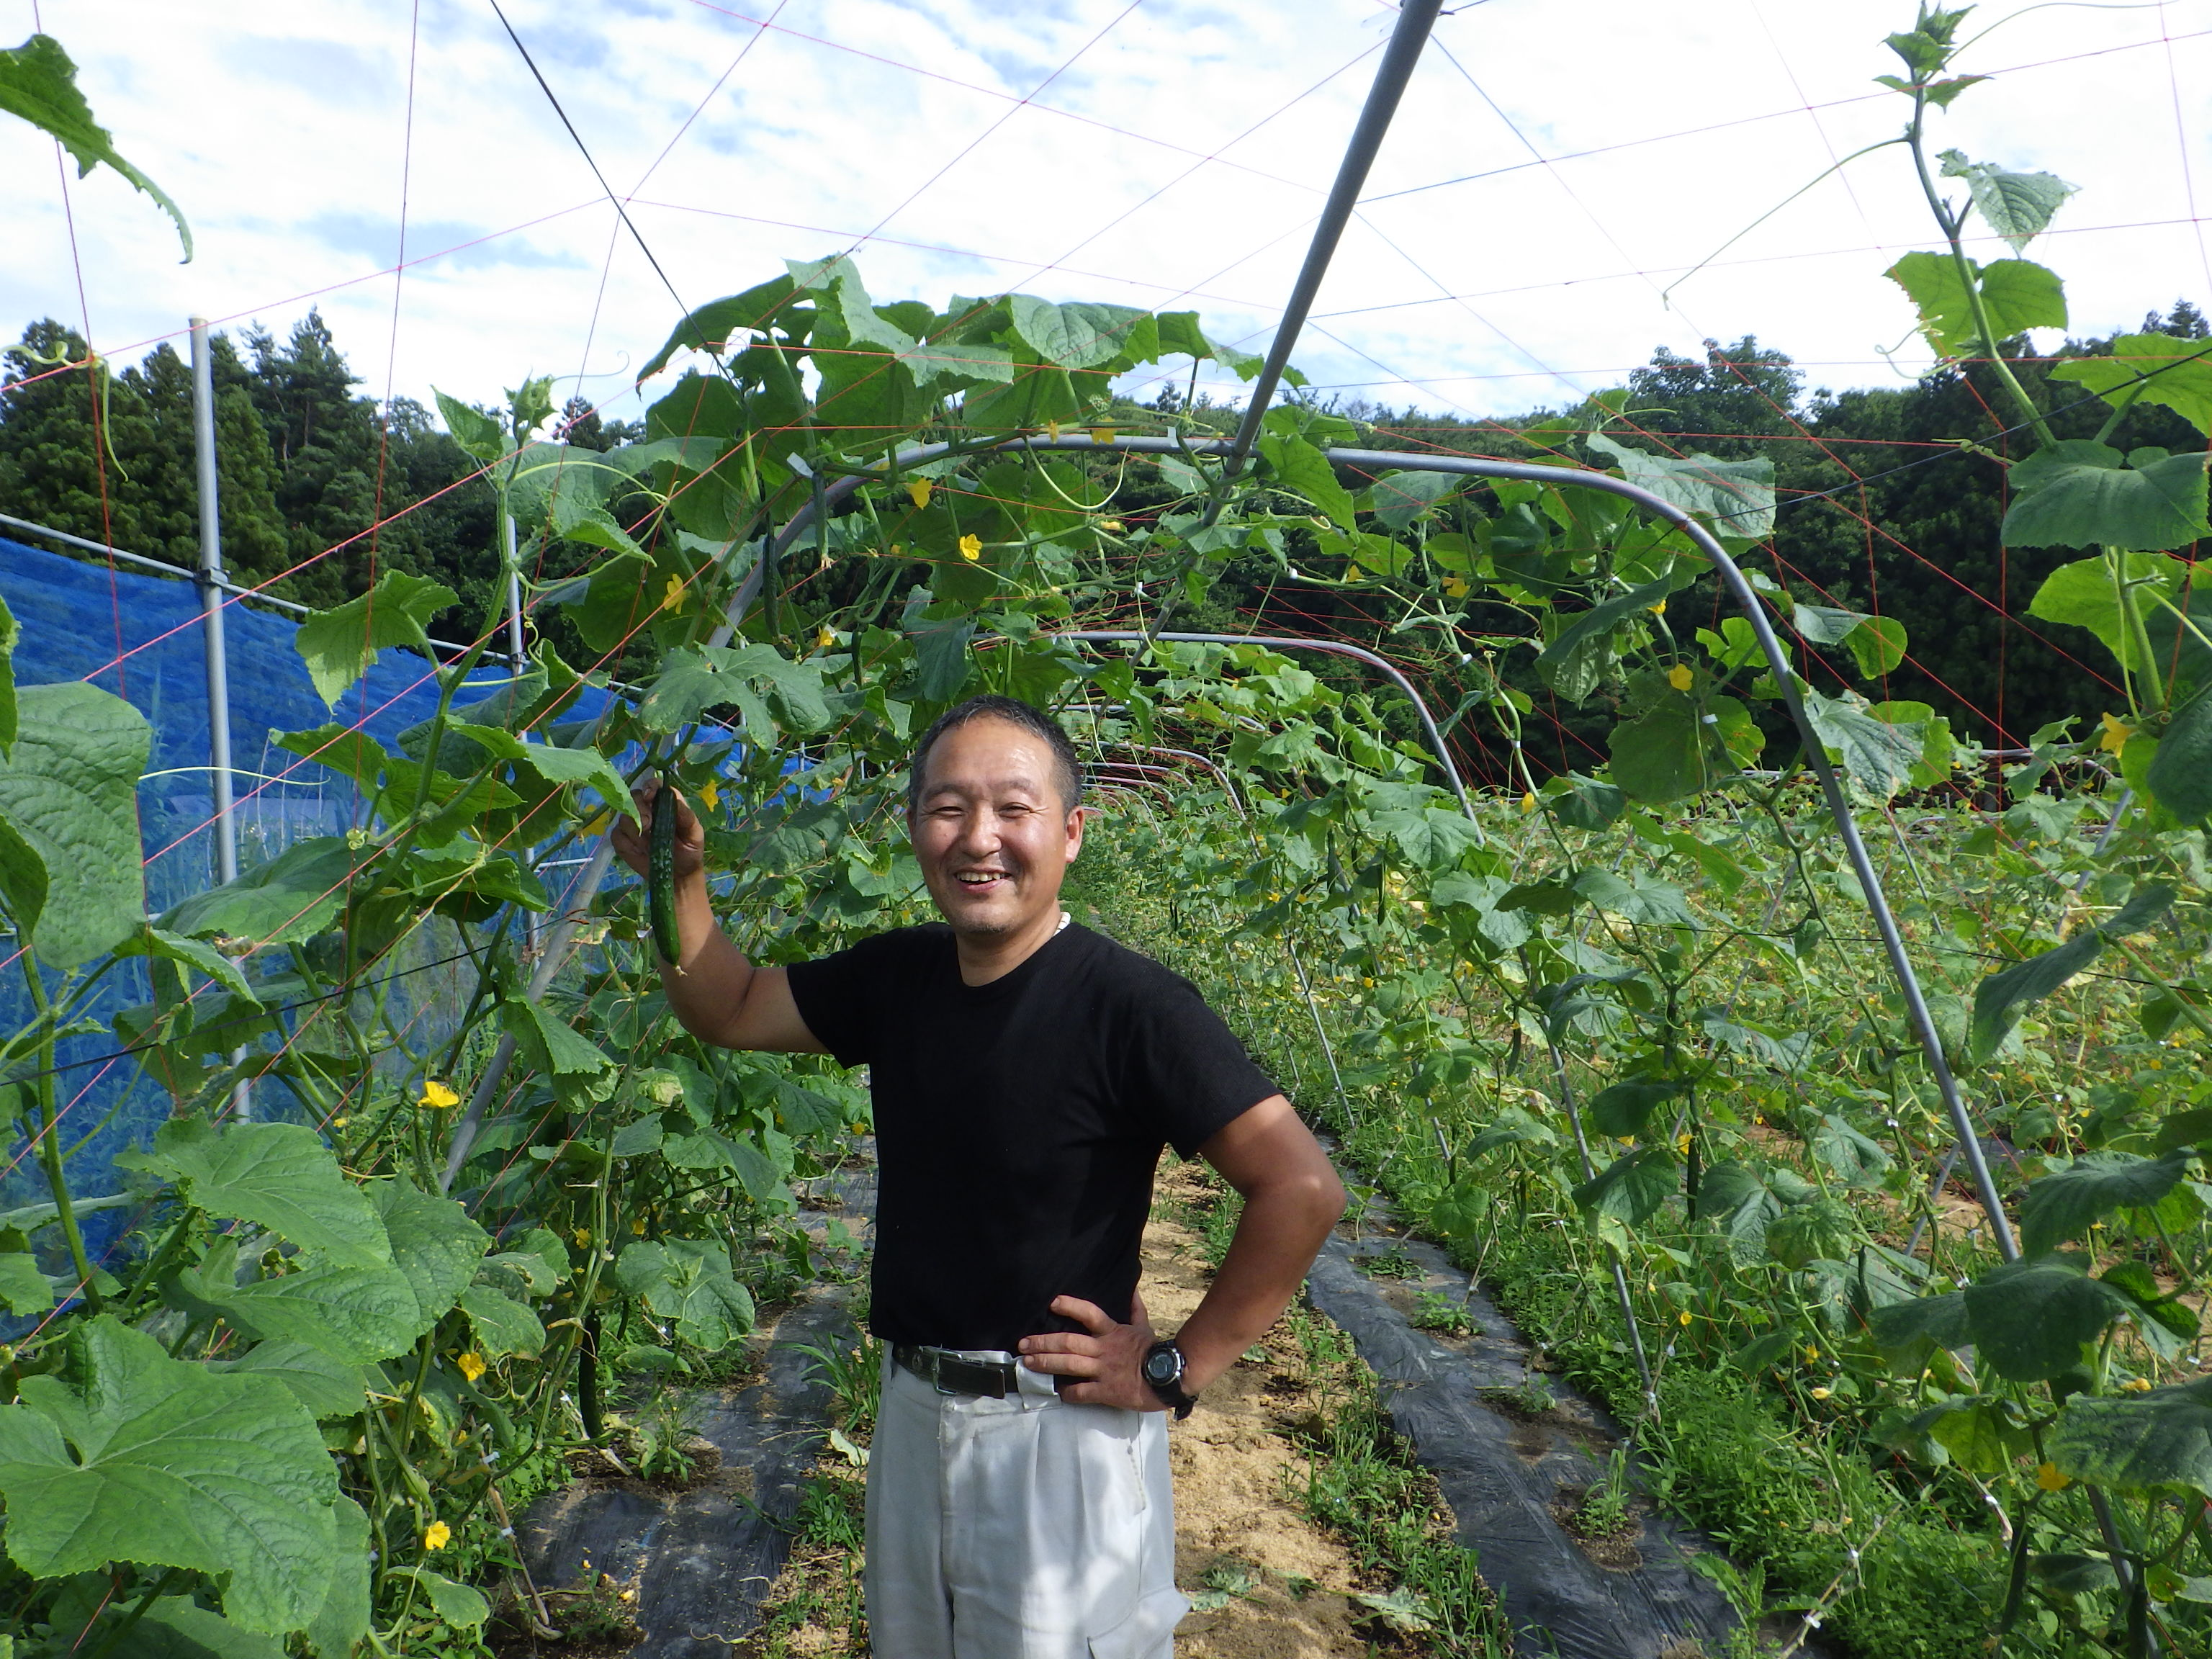 A Cucumber Farm Quickly Recovered After the Nuclear Plant Accident in Fukushima